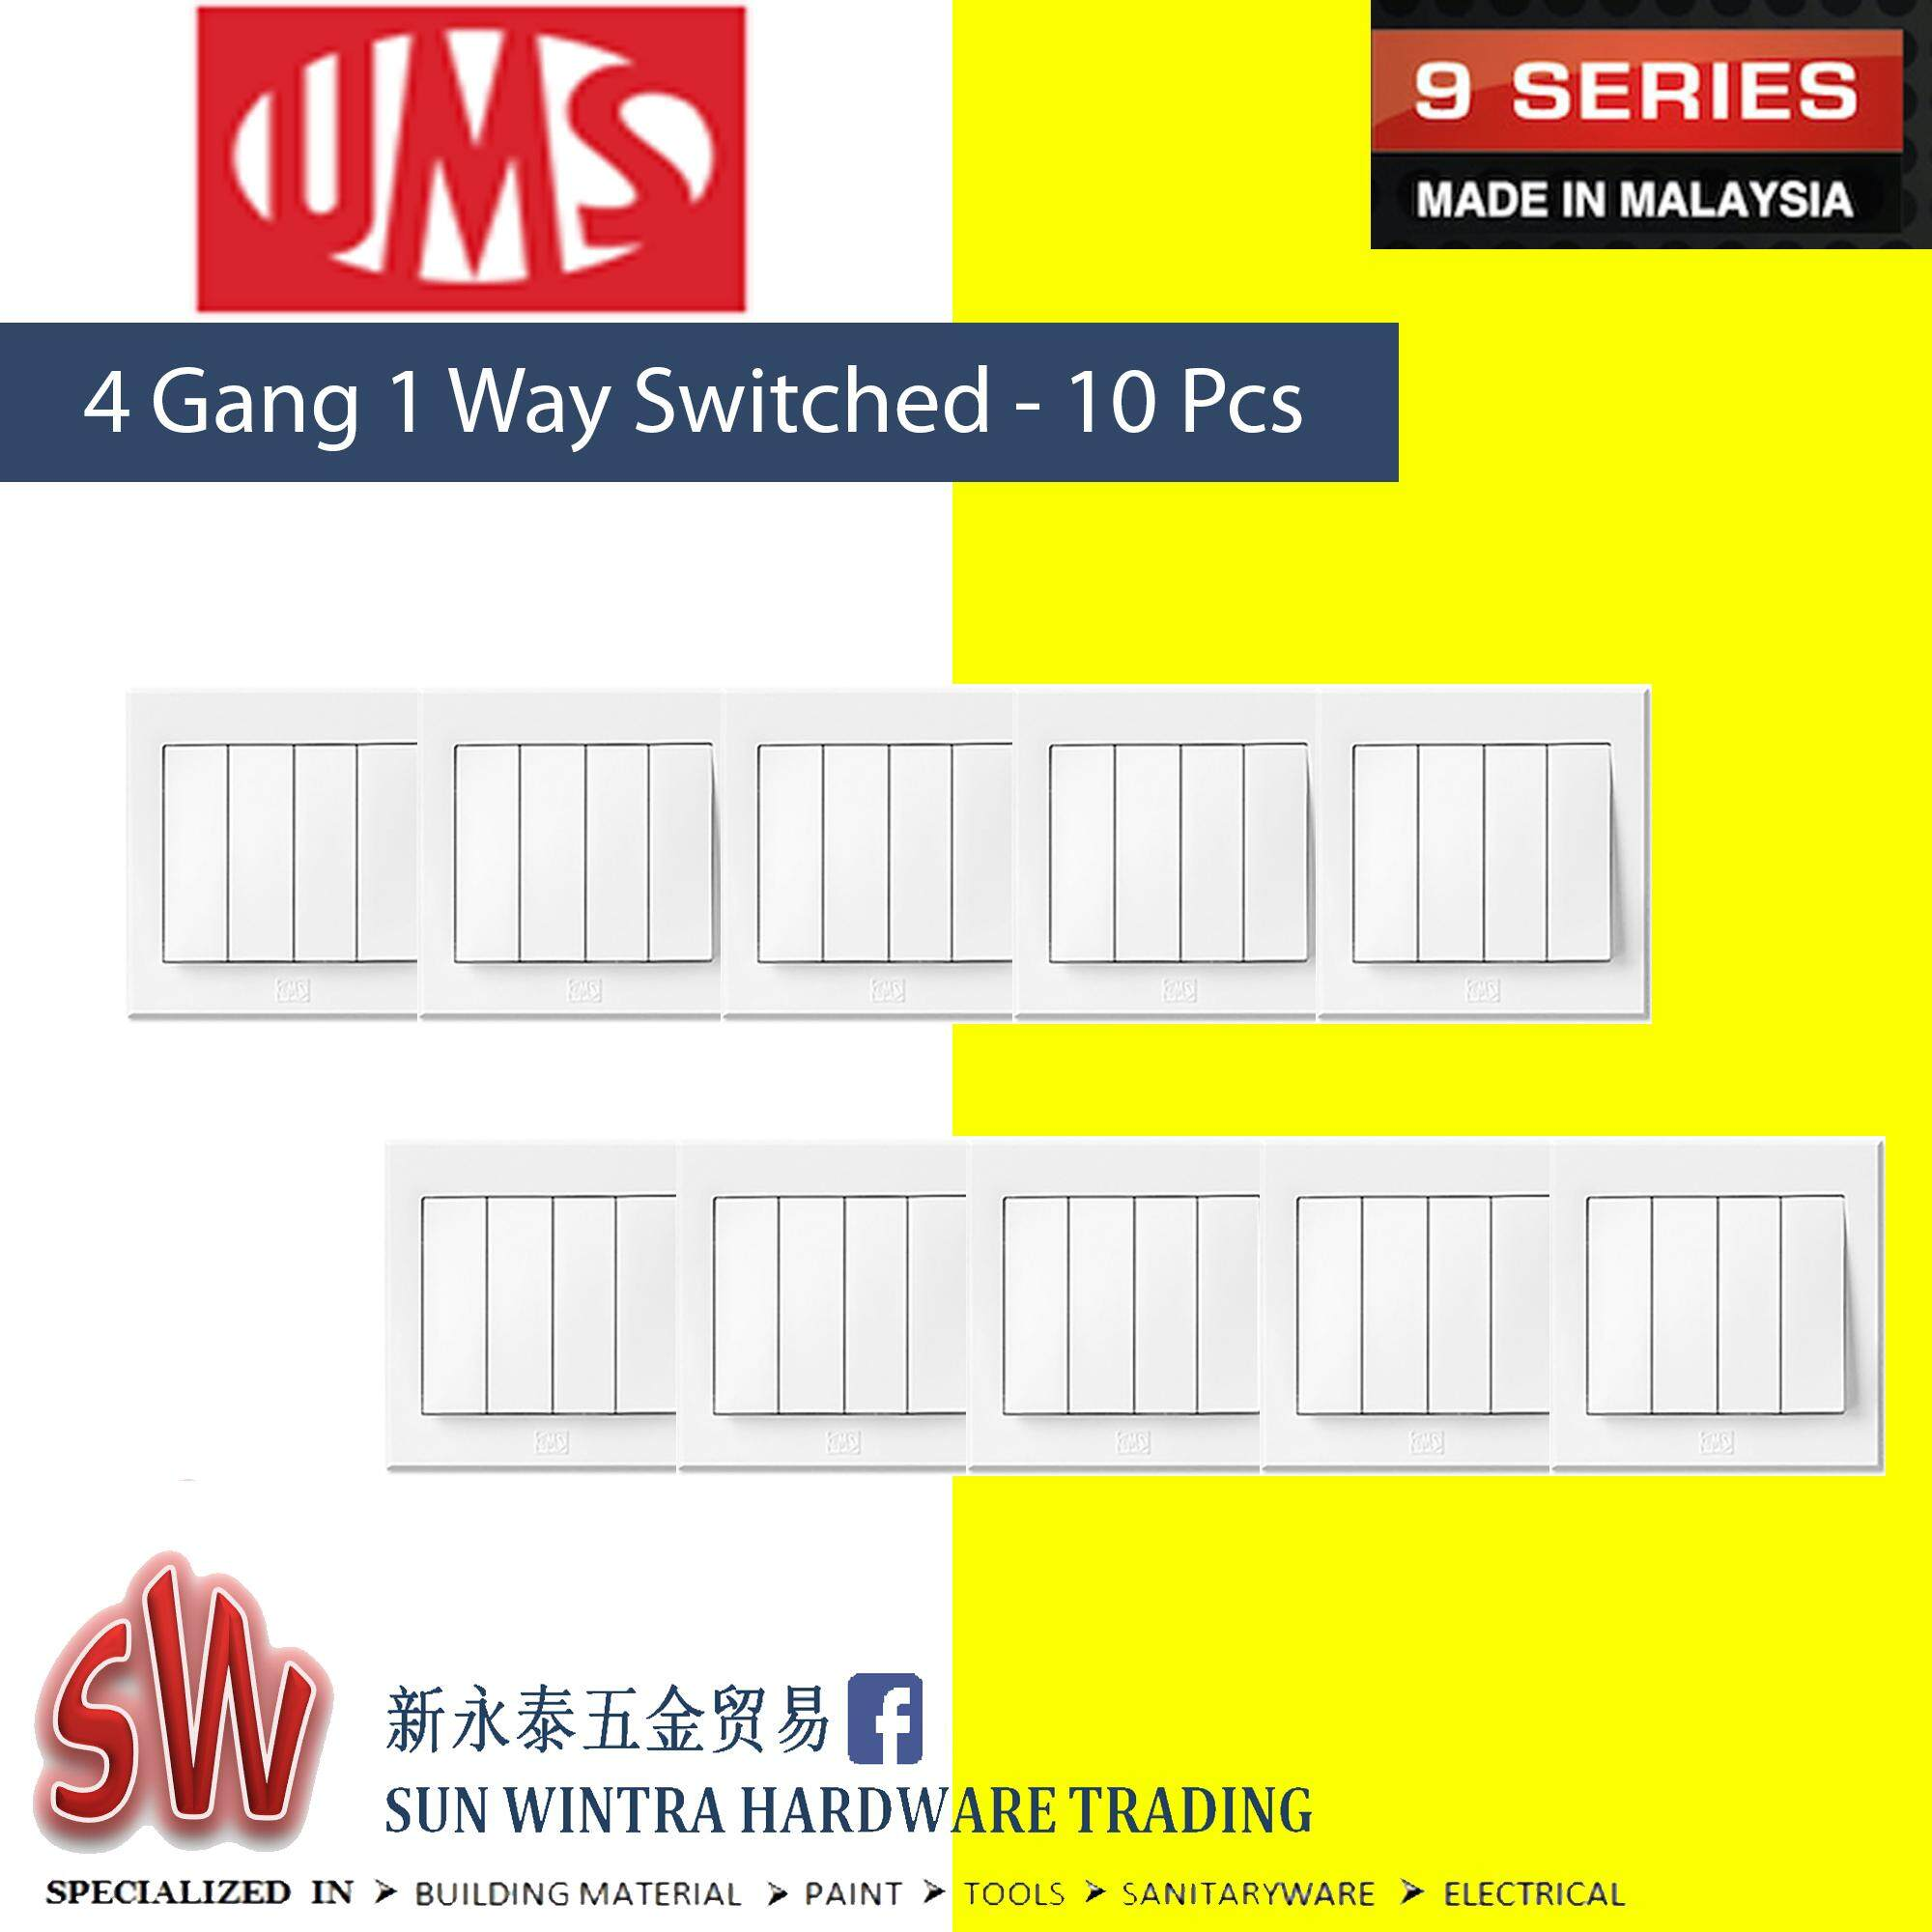 UMS 9 Series 4 Gang 1 Way Switched 10Pcs